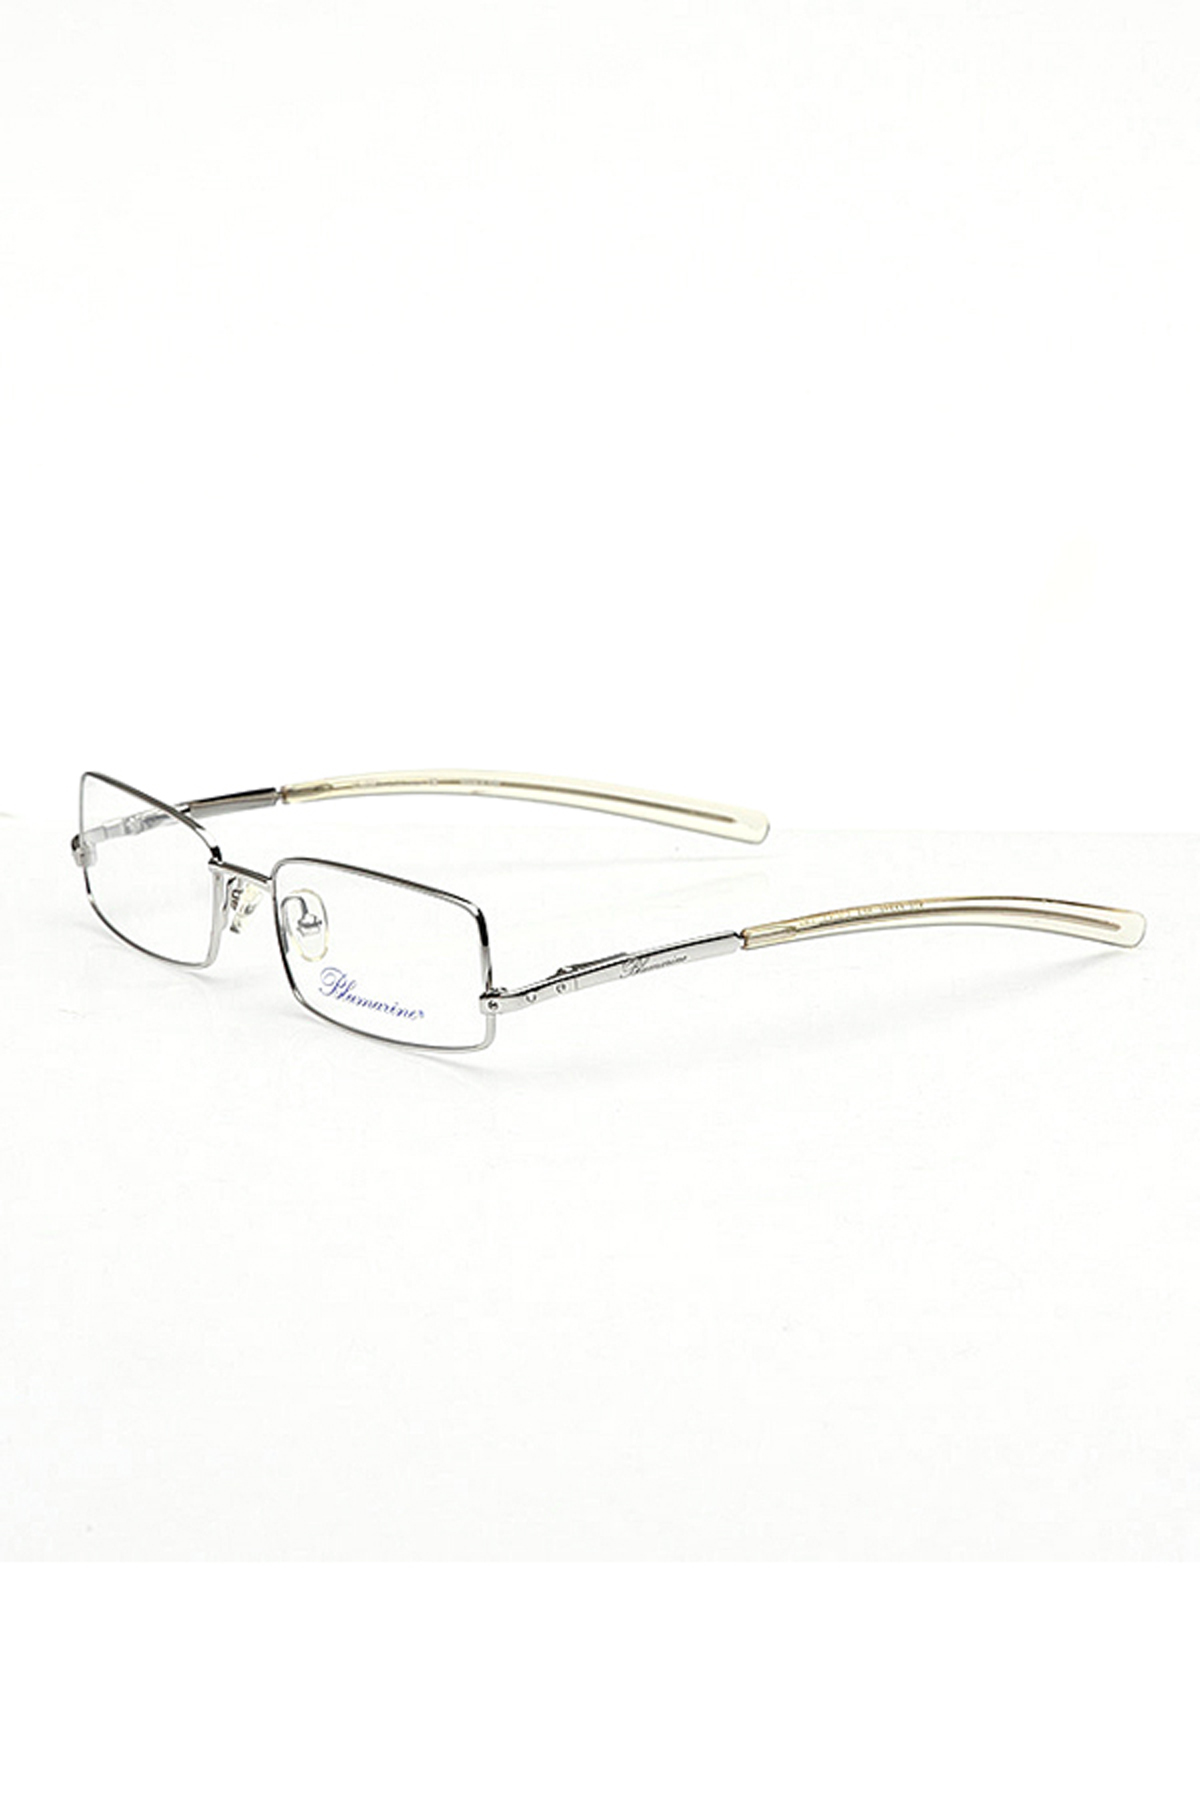 Markamilla Women Reading Glasses Frame Demo Glasses Eyewear Transparent High Quality WomenBlumarine BM 90631 054